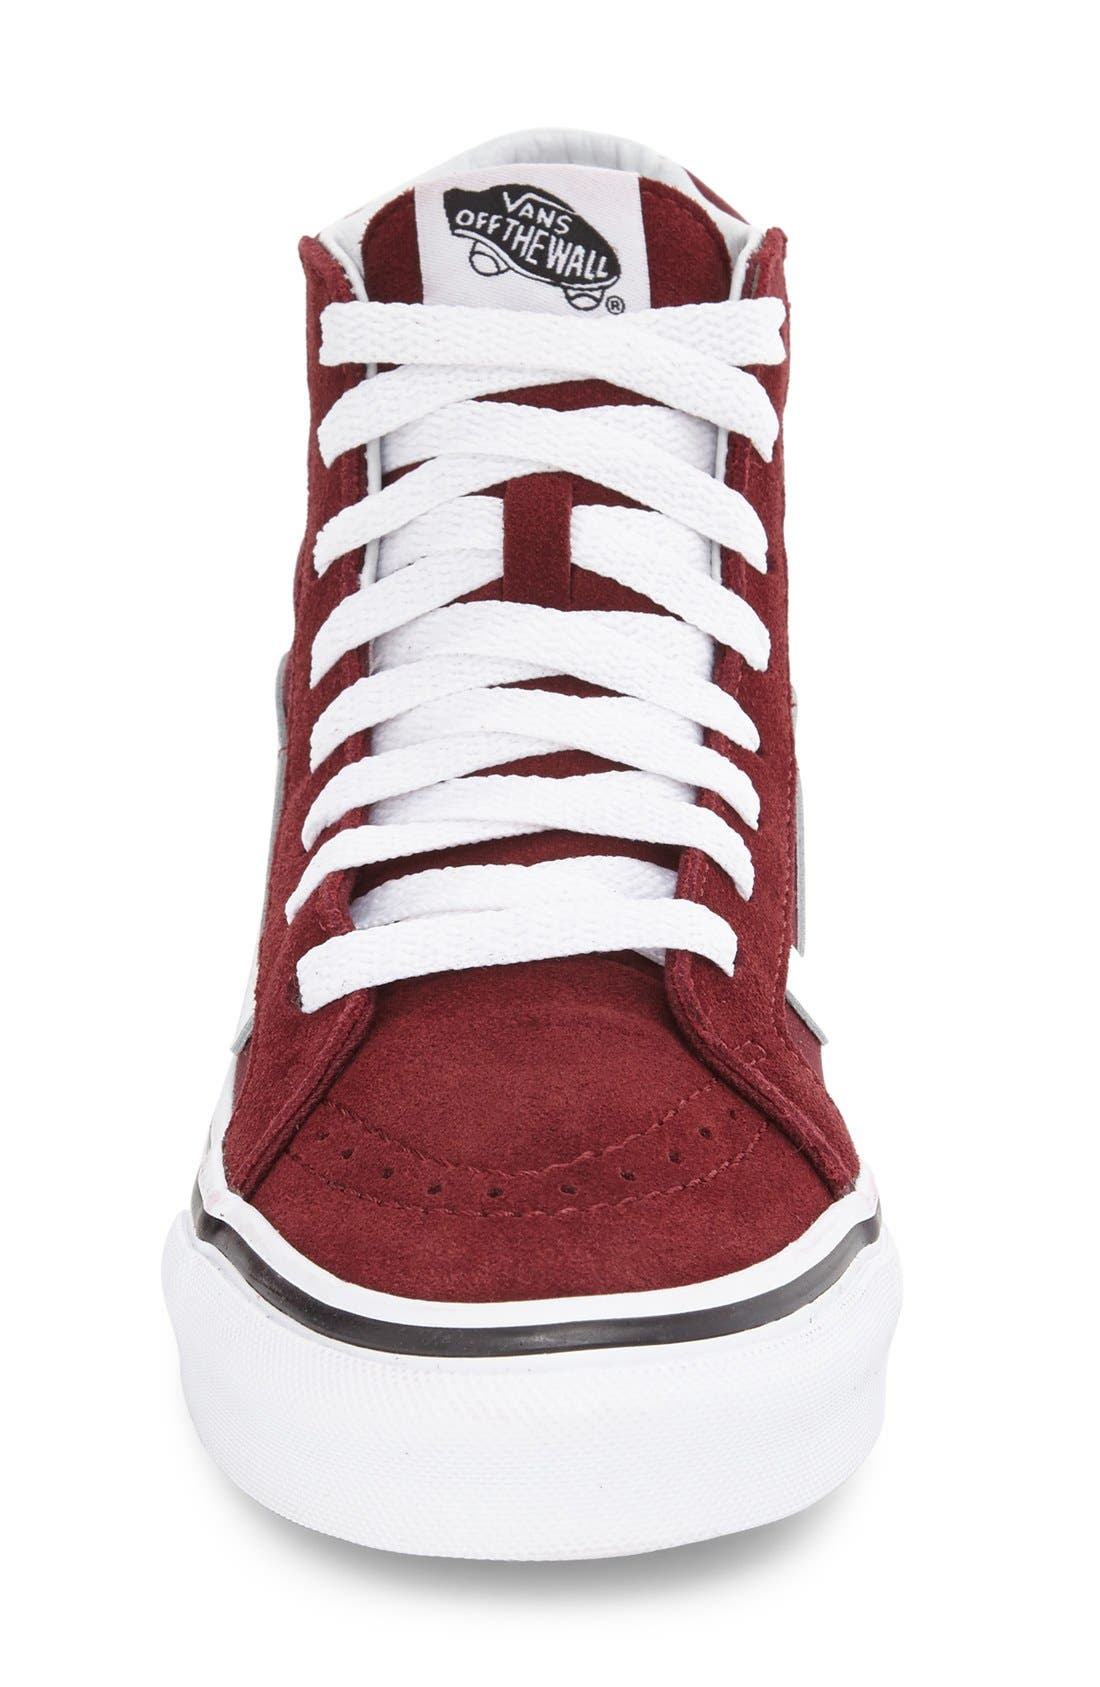 Alternate Image 3  - Vans Sk8-Hi Slim High Top Sneaker (Women)